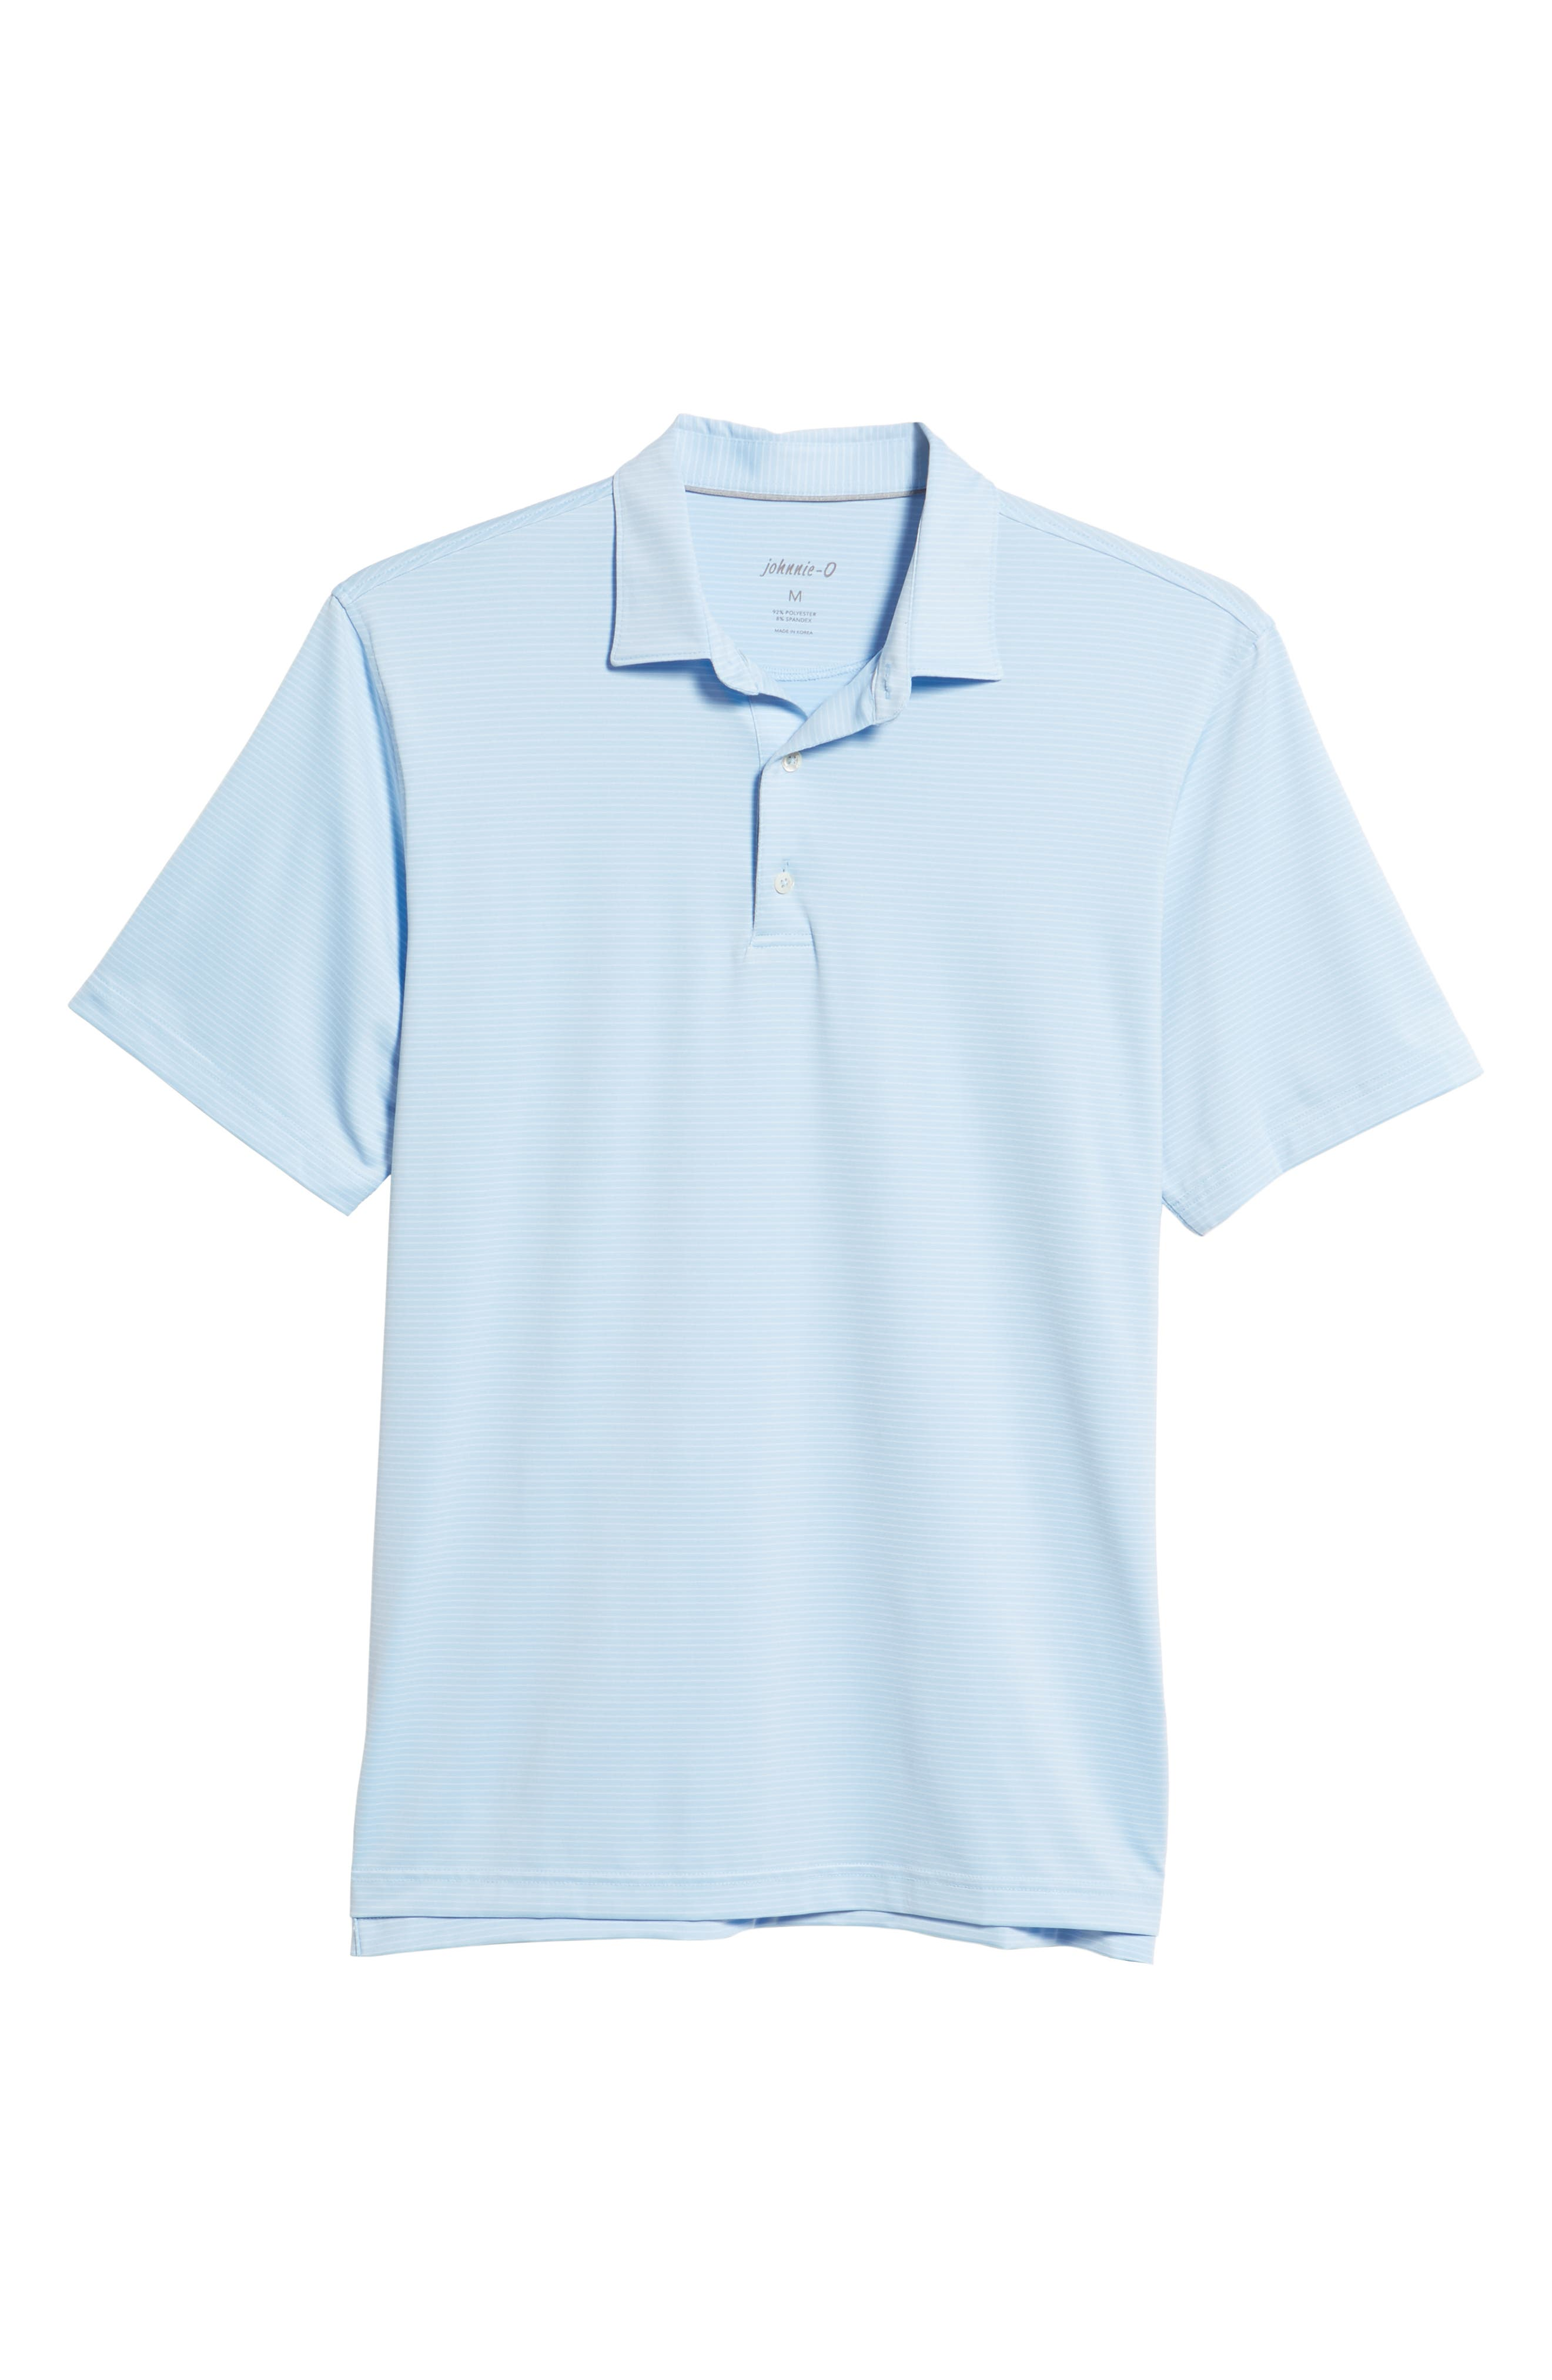 Albatross Regular Fit Stripe Prep-Formance Polo,                             Alternate thumbnail 6, color,                             GULF BLUE